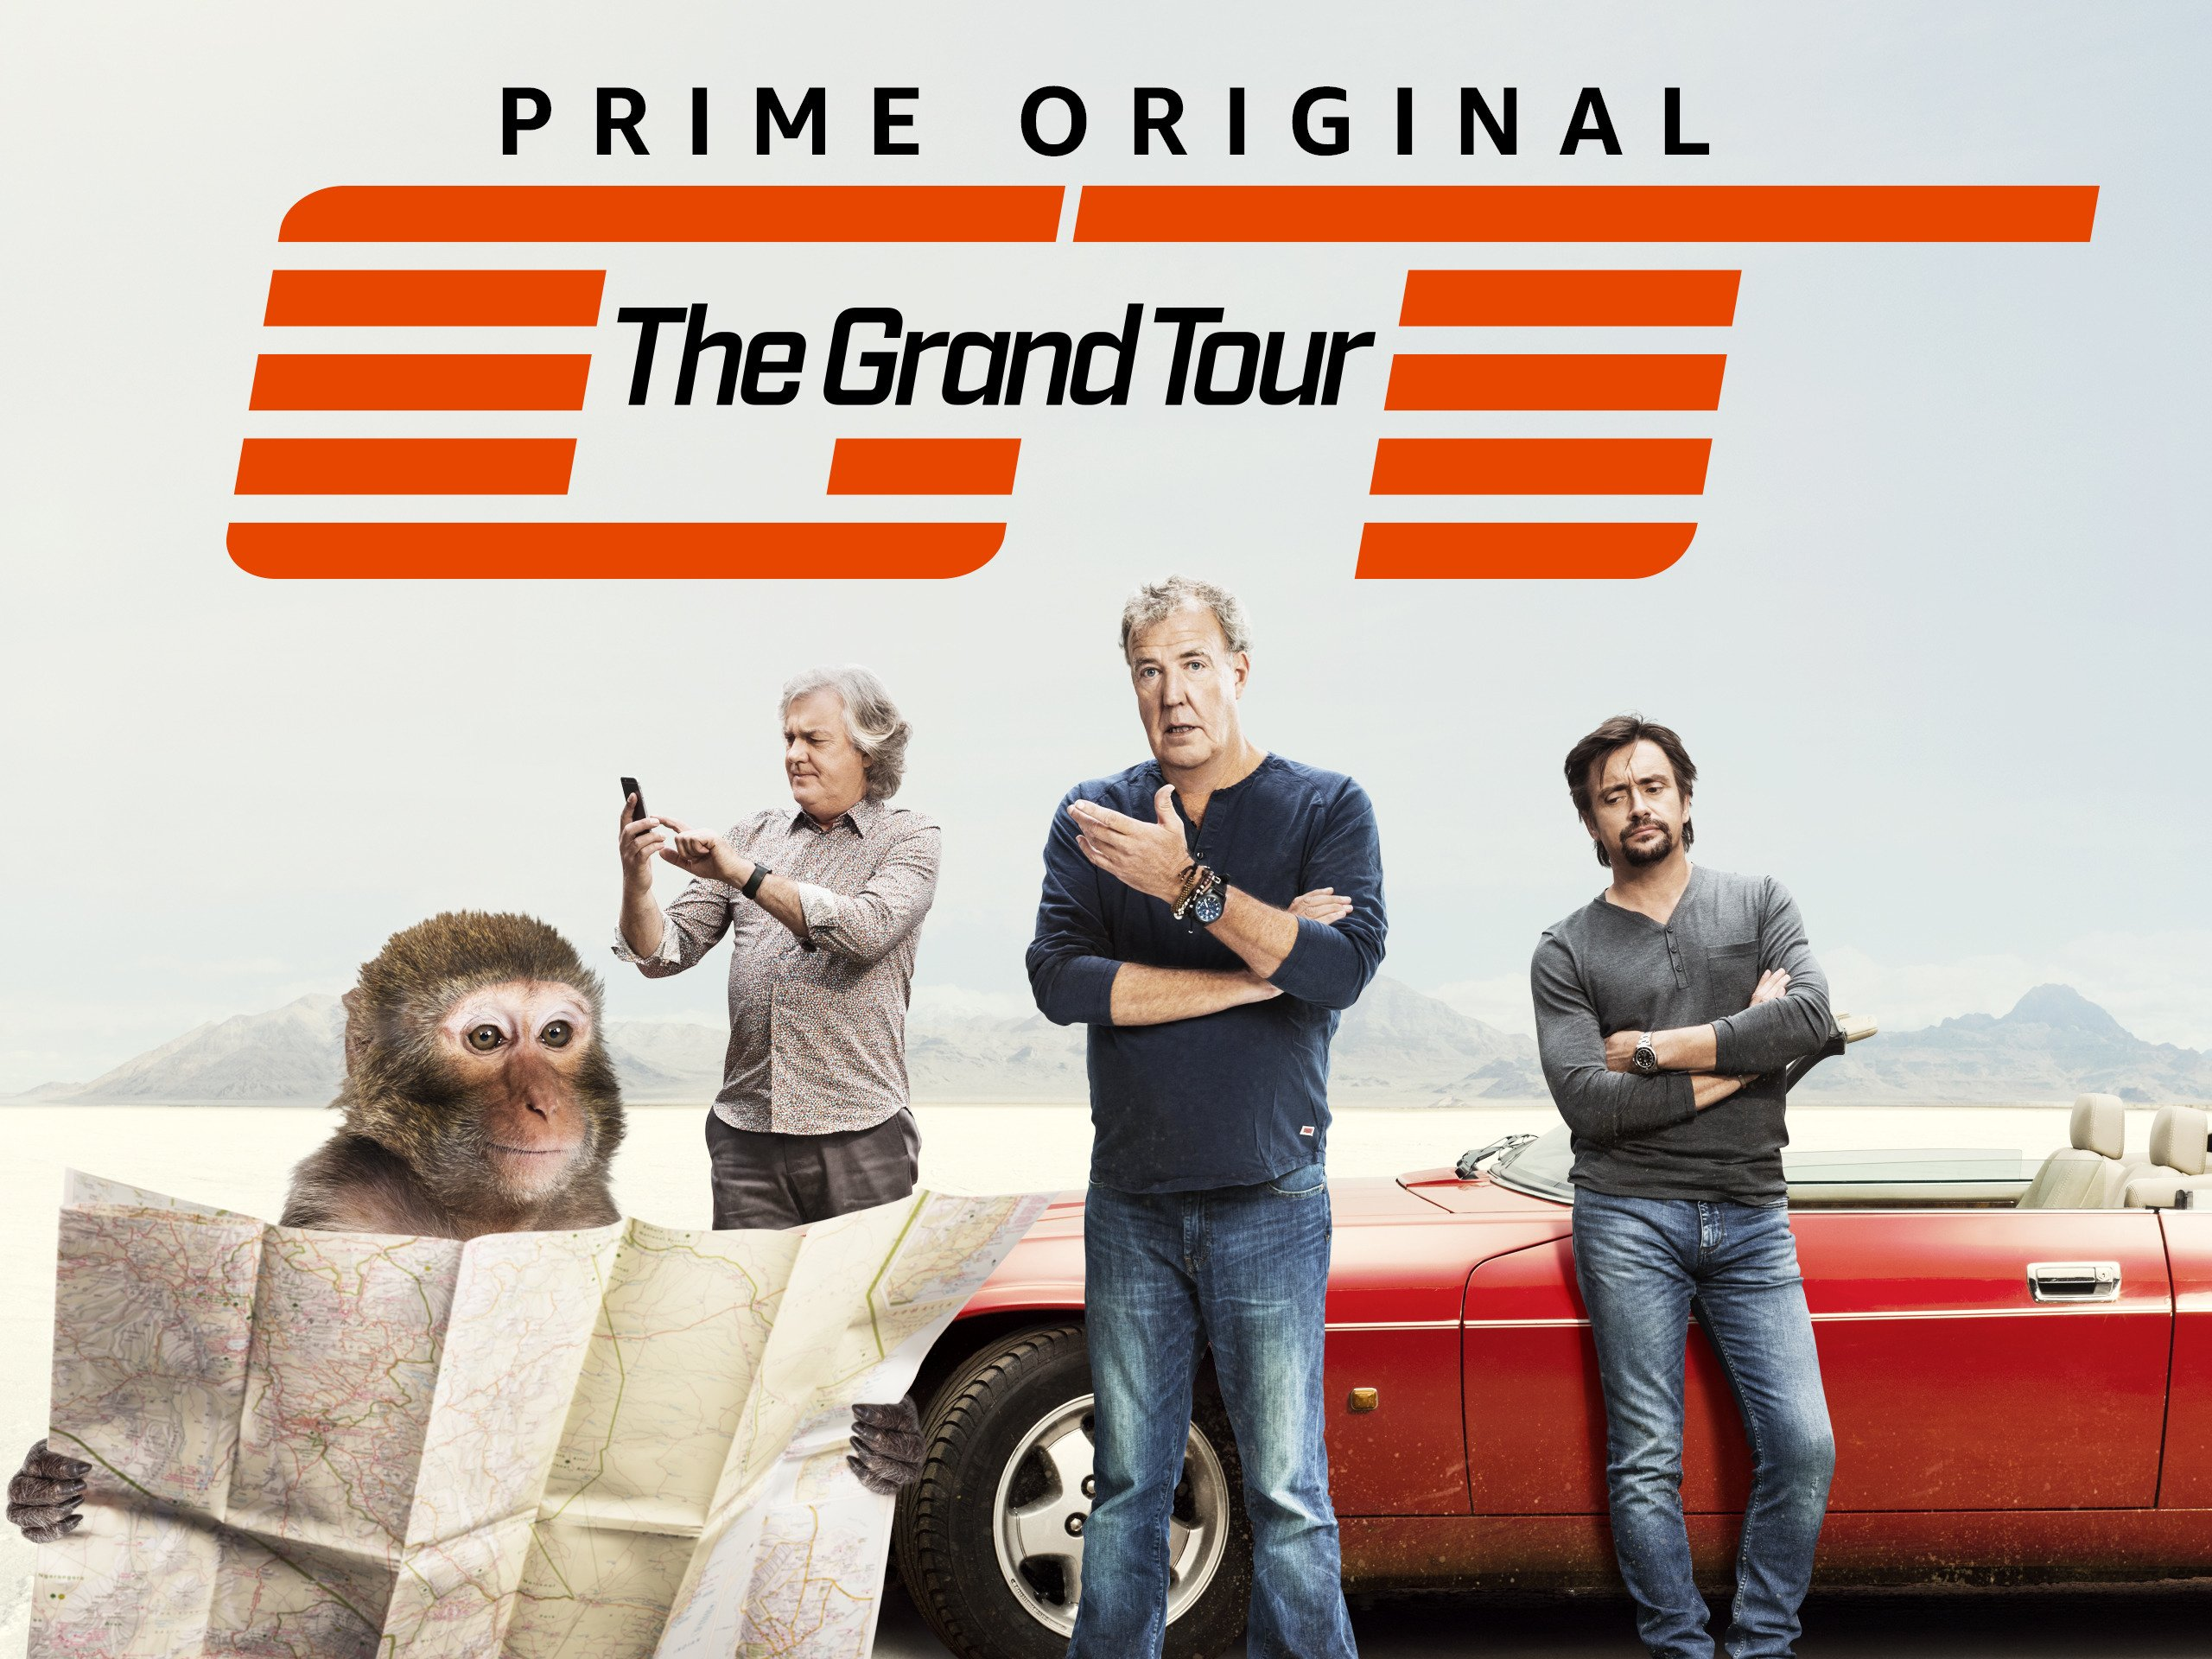 The Grand Tour season 4 budget rivals Marvel says Jeremy Clarkson